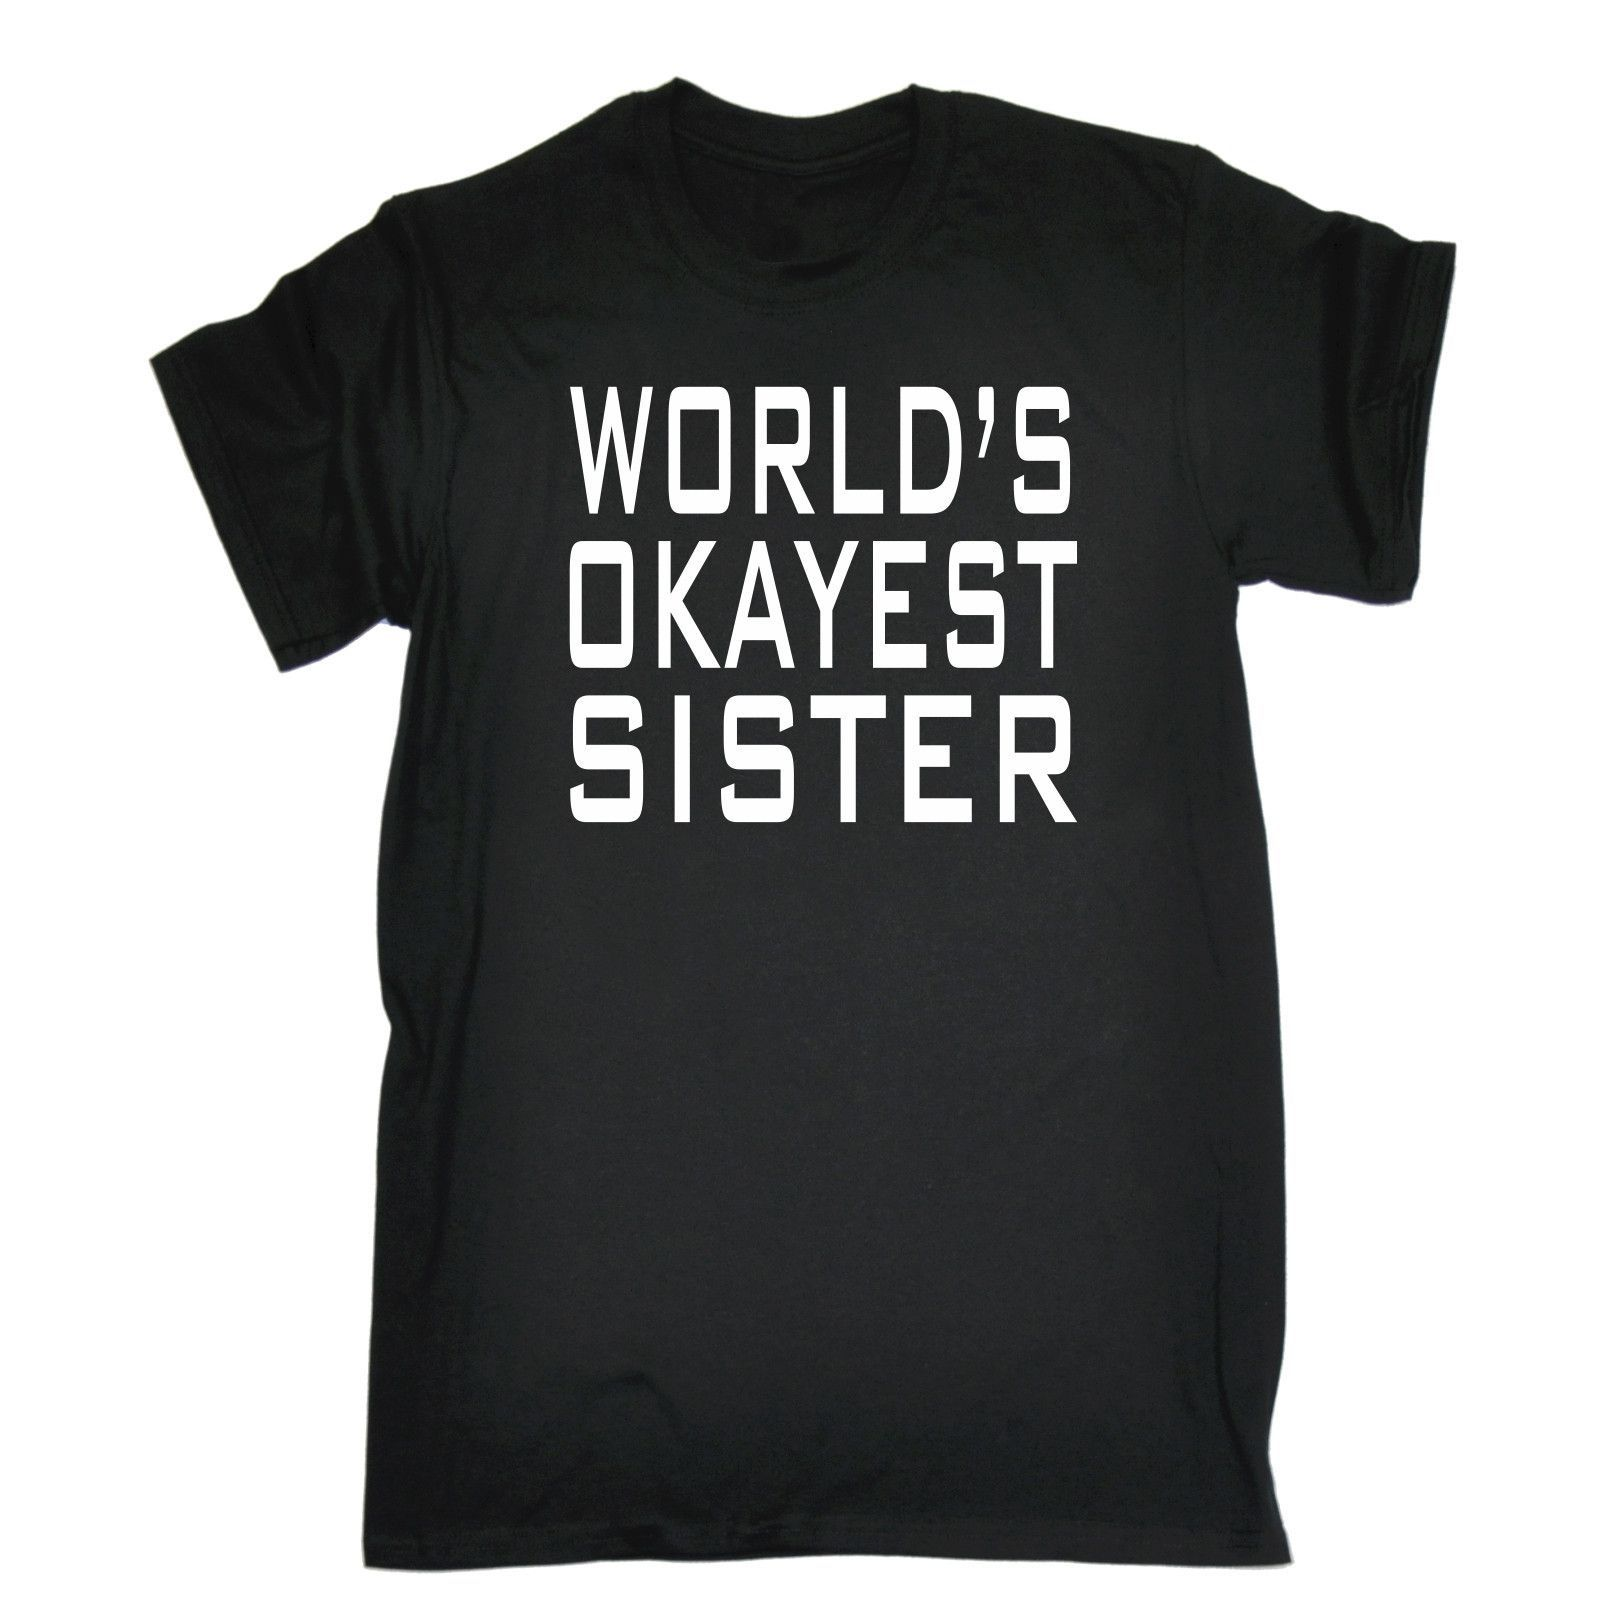 123t USA Kids World's Okayest Sister Funny T-Shirt Ages 3-13